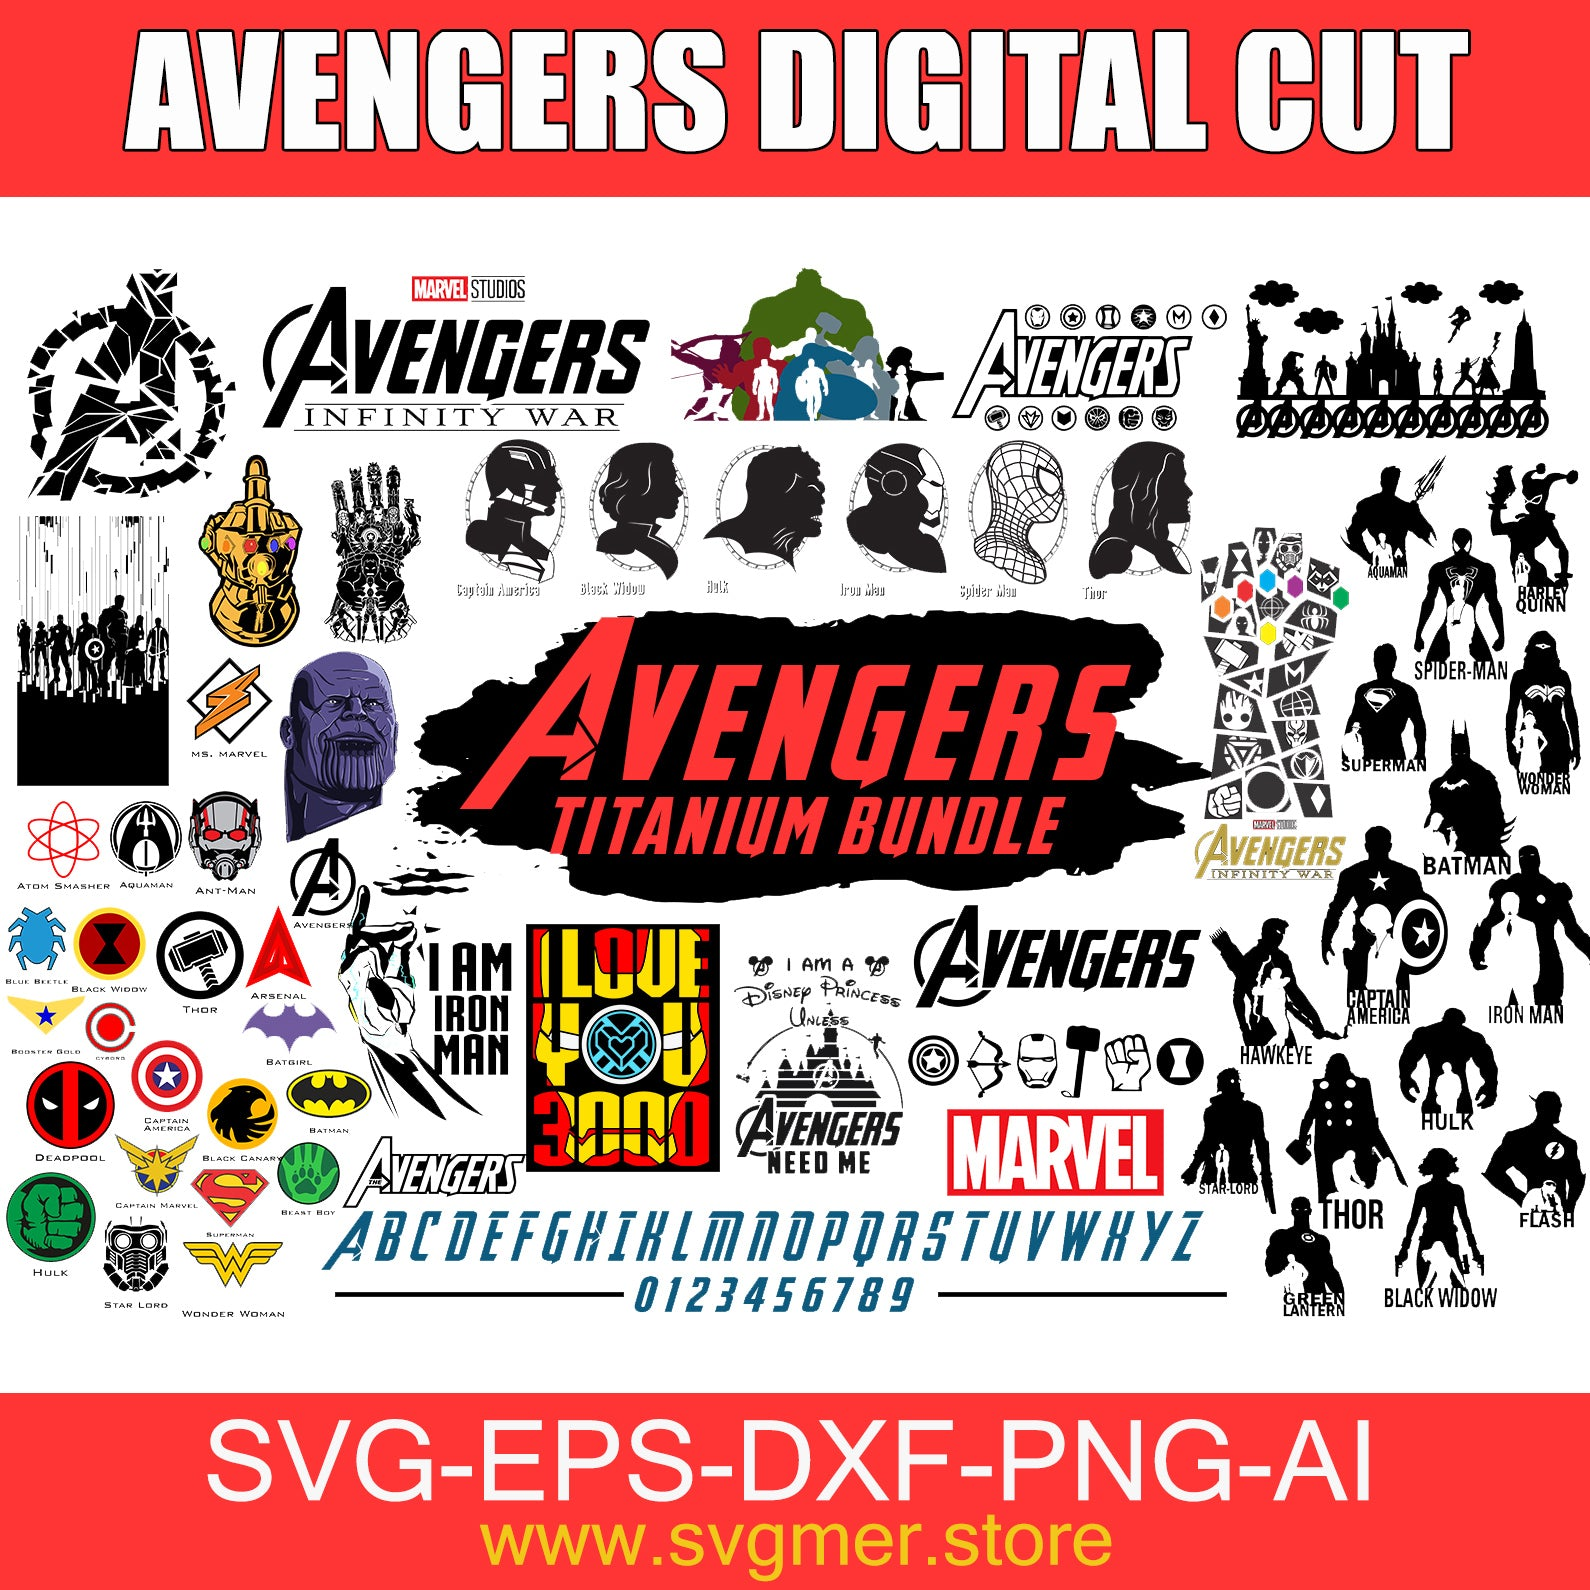 avengers DIGITAL CUT DXF SVG EPS PNG